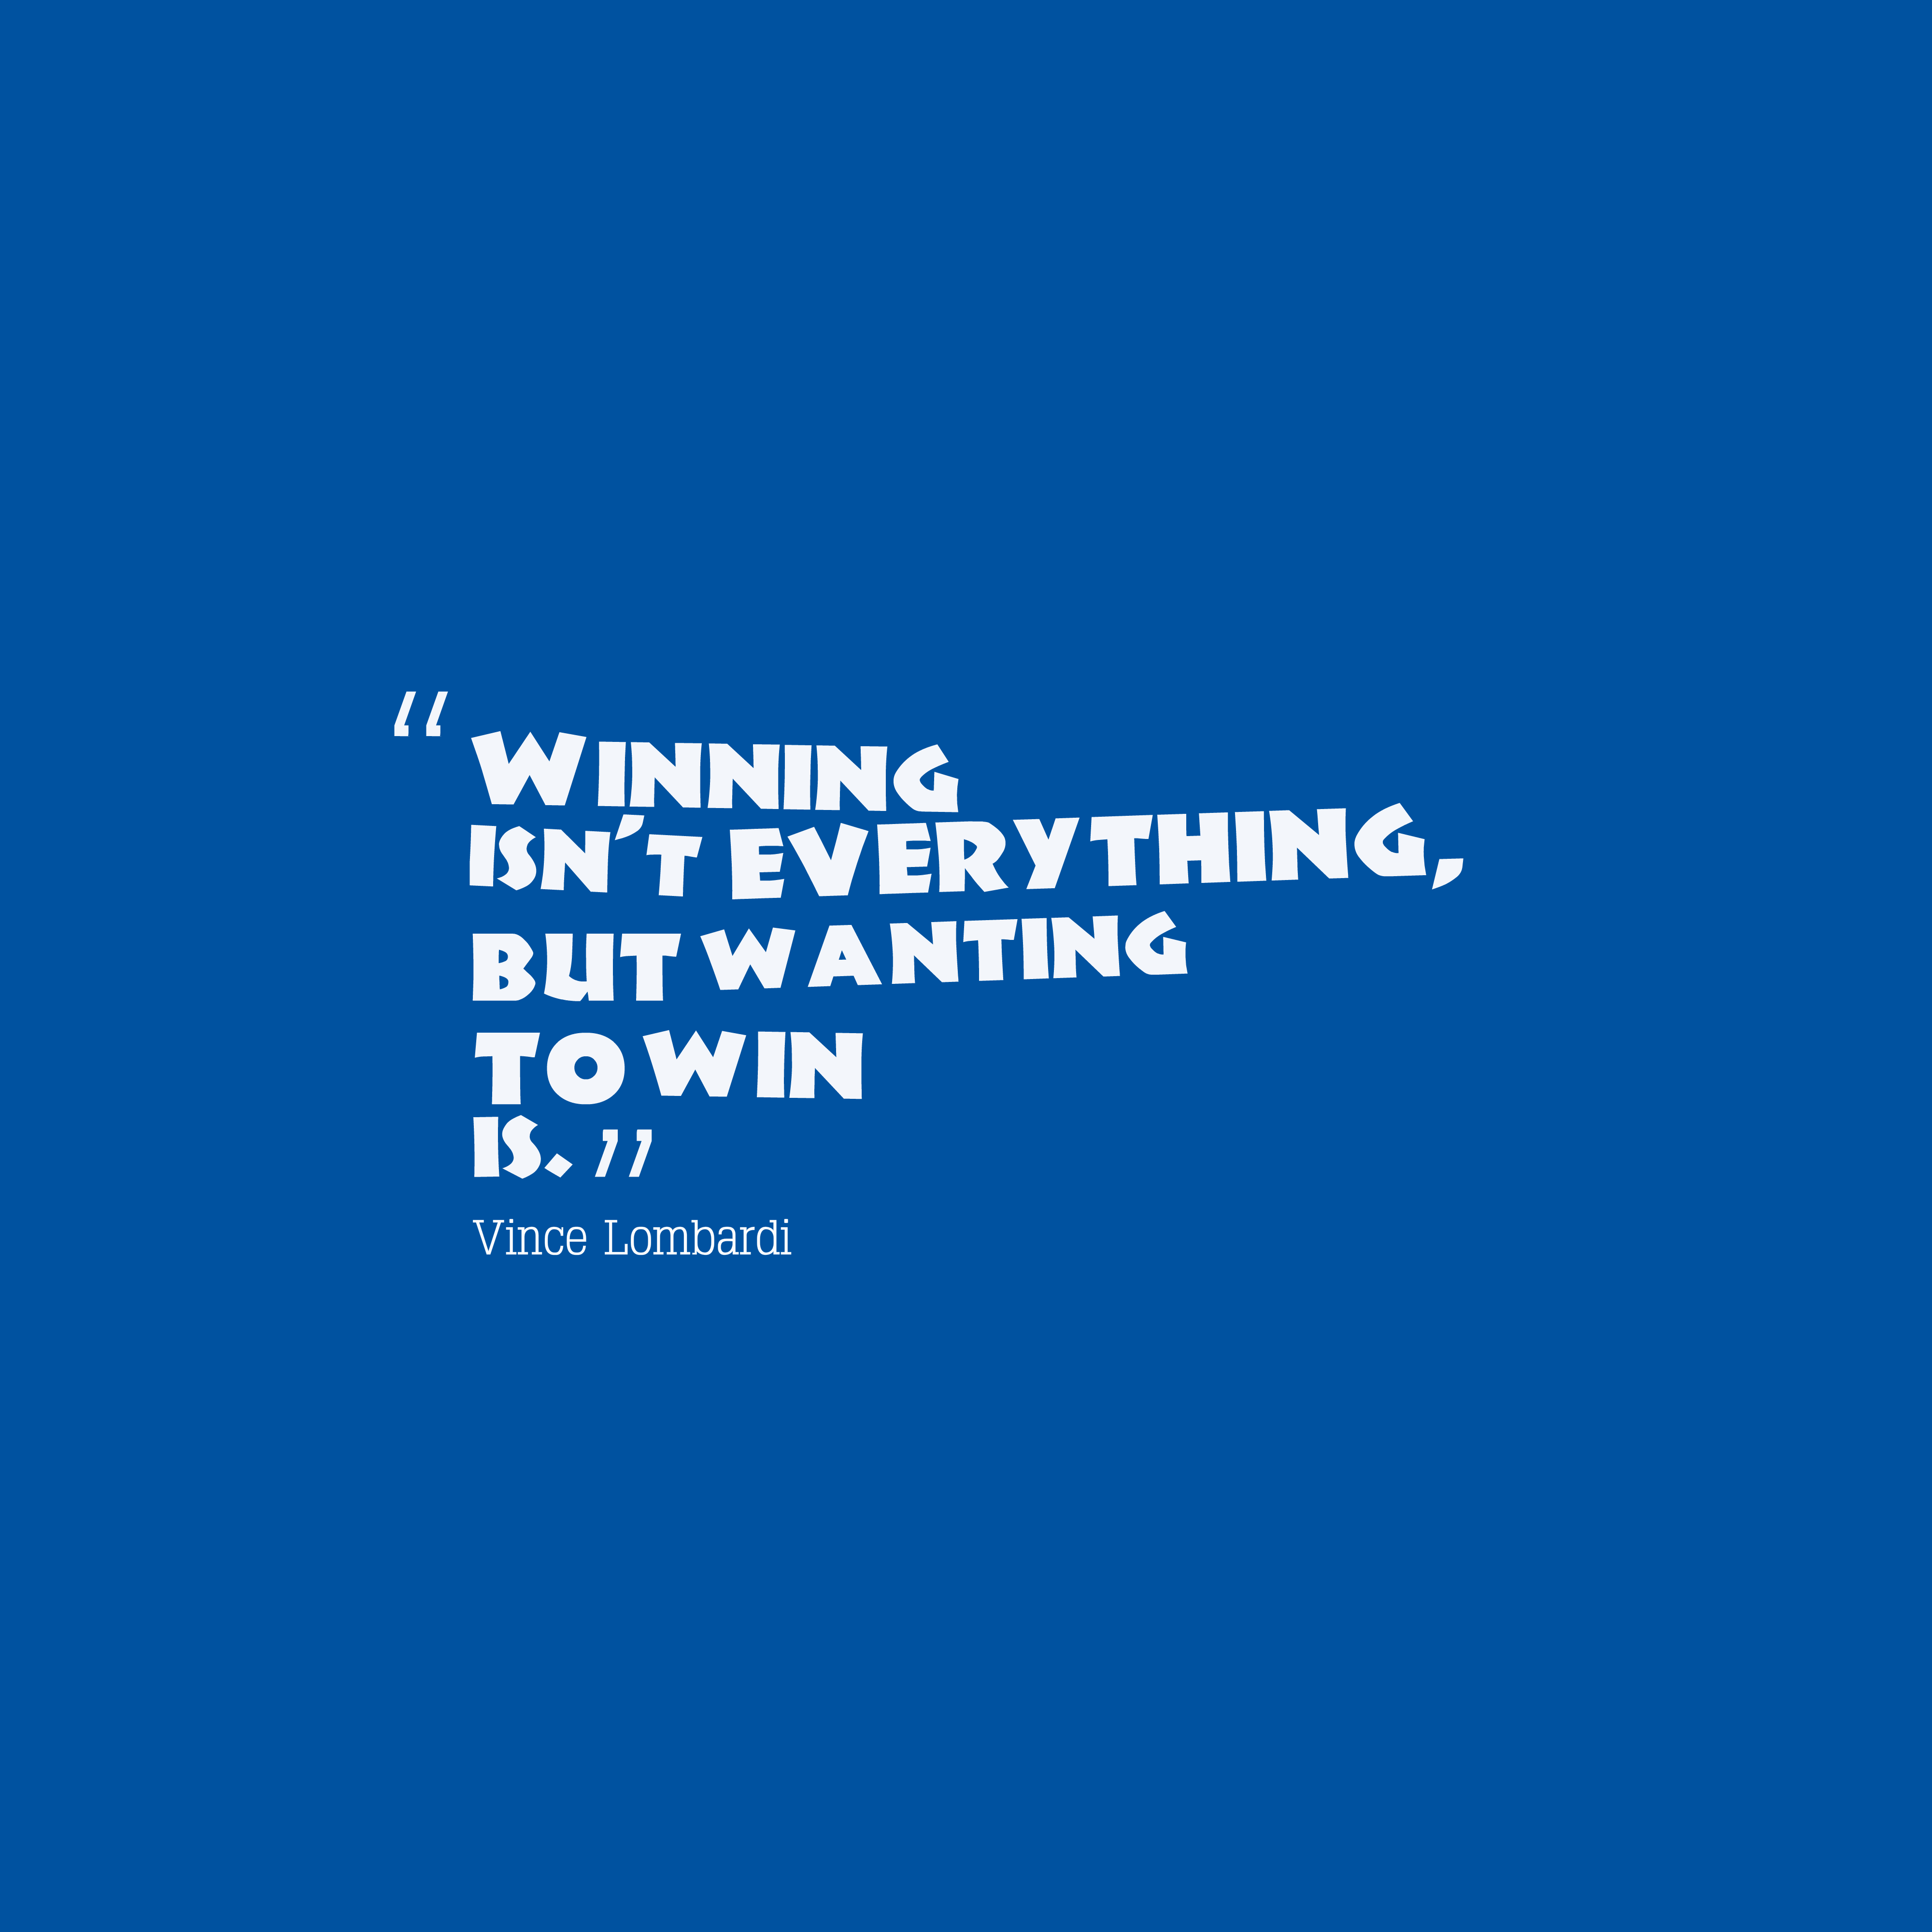 Quotes image of Winning isn't everything, but wanting to win is.